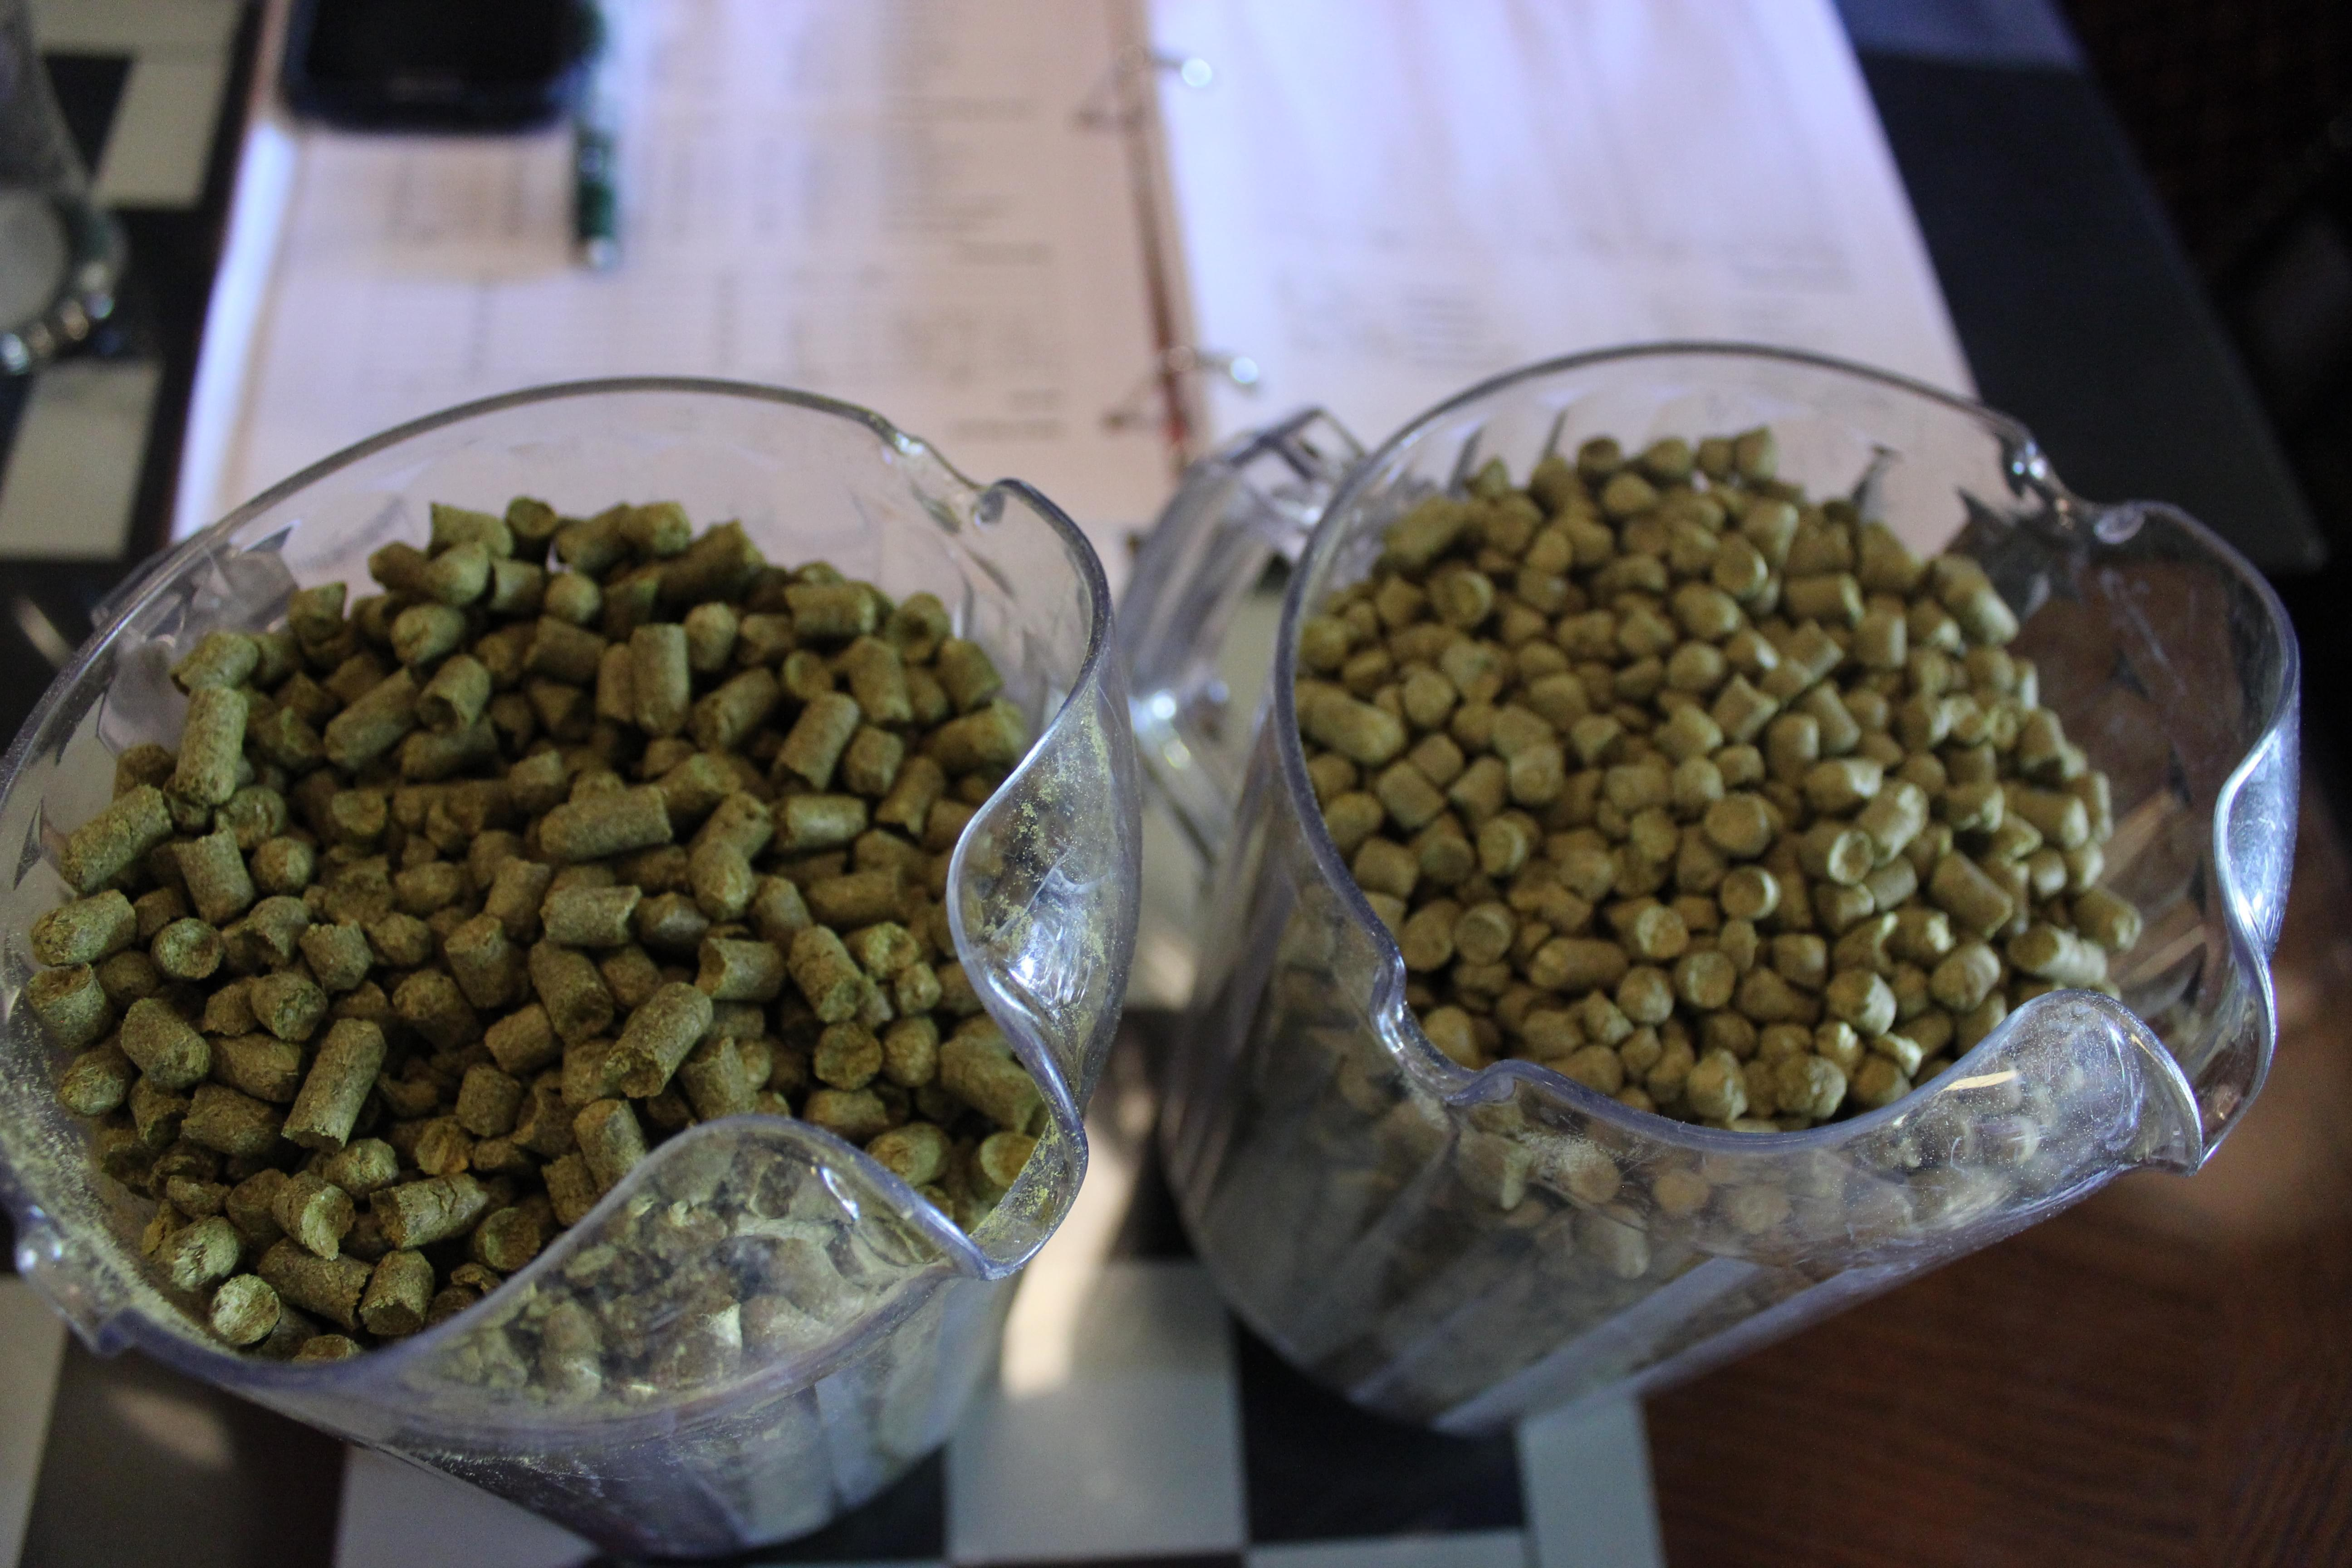 Cascade and centennial hops used for one of Bill Morgan's upcoming IPAs.